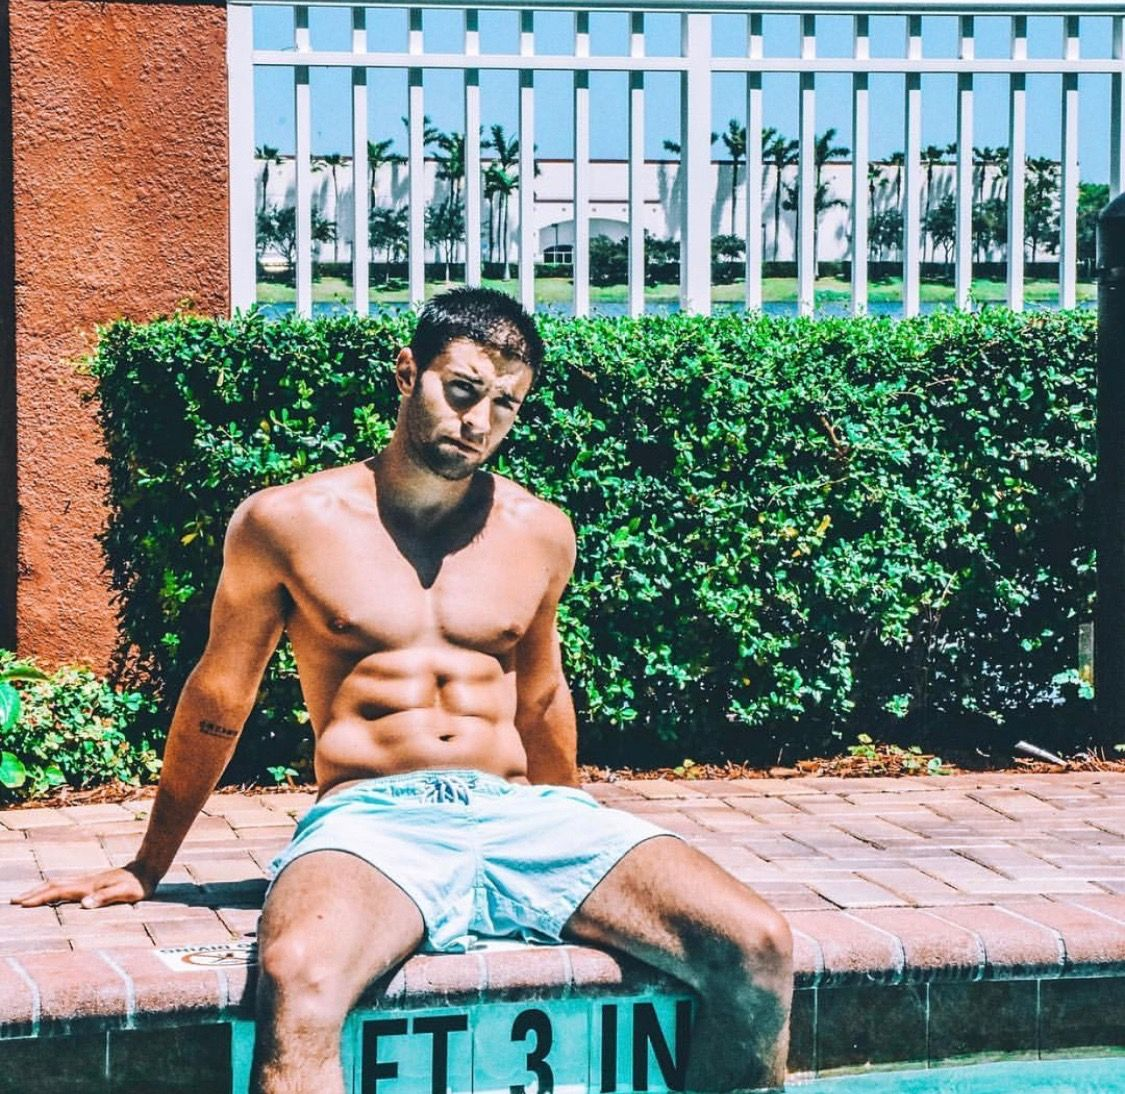 Pin by Brianna Beck on Baes   Jake miller, Shirtless, Cute